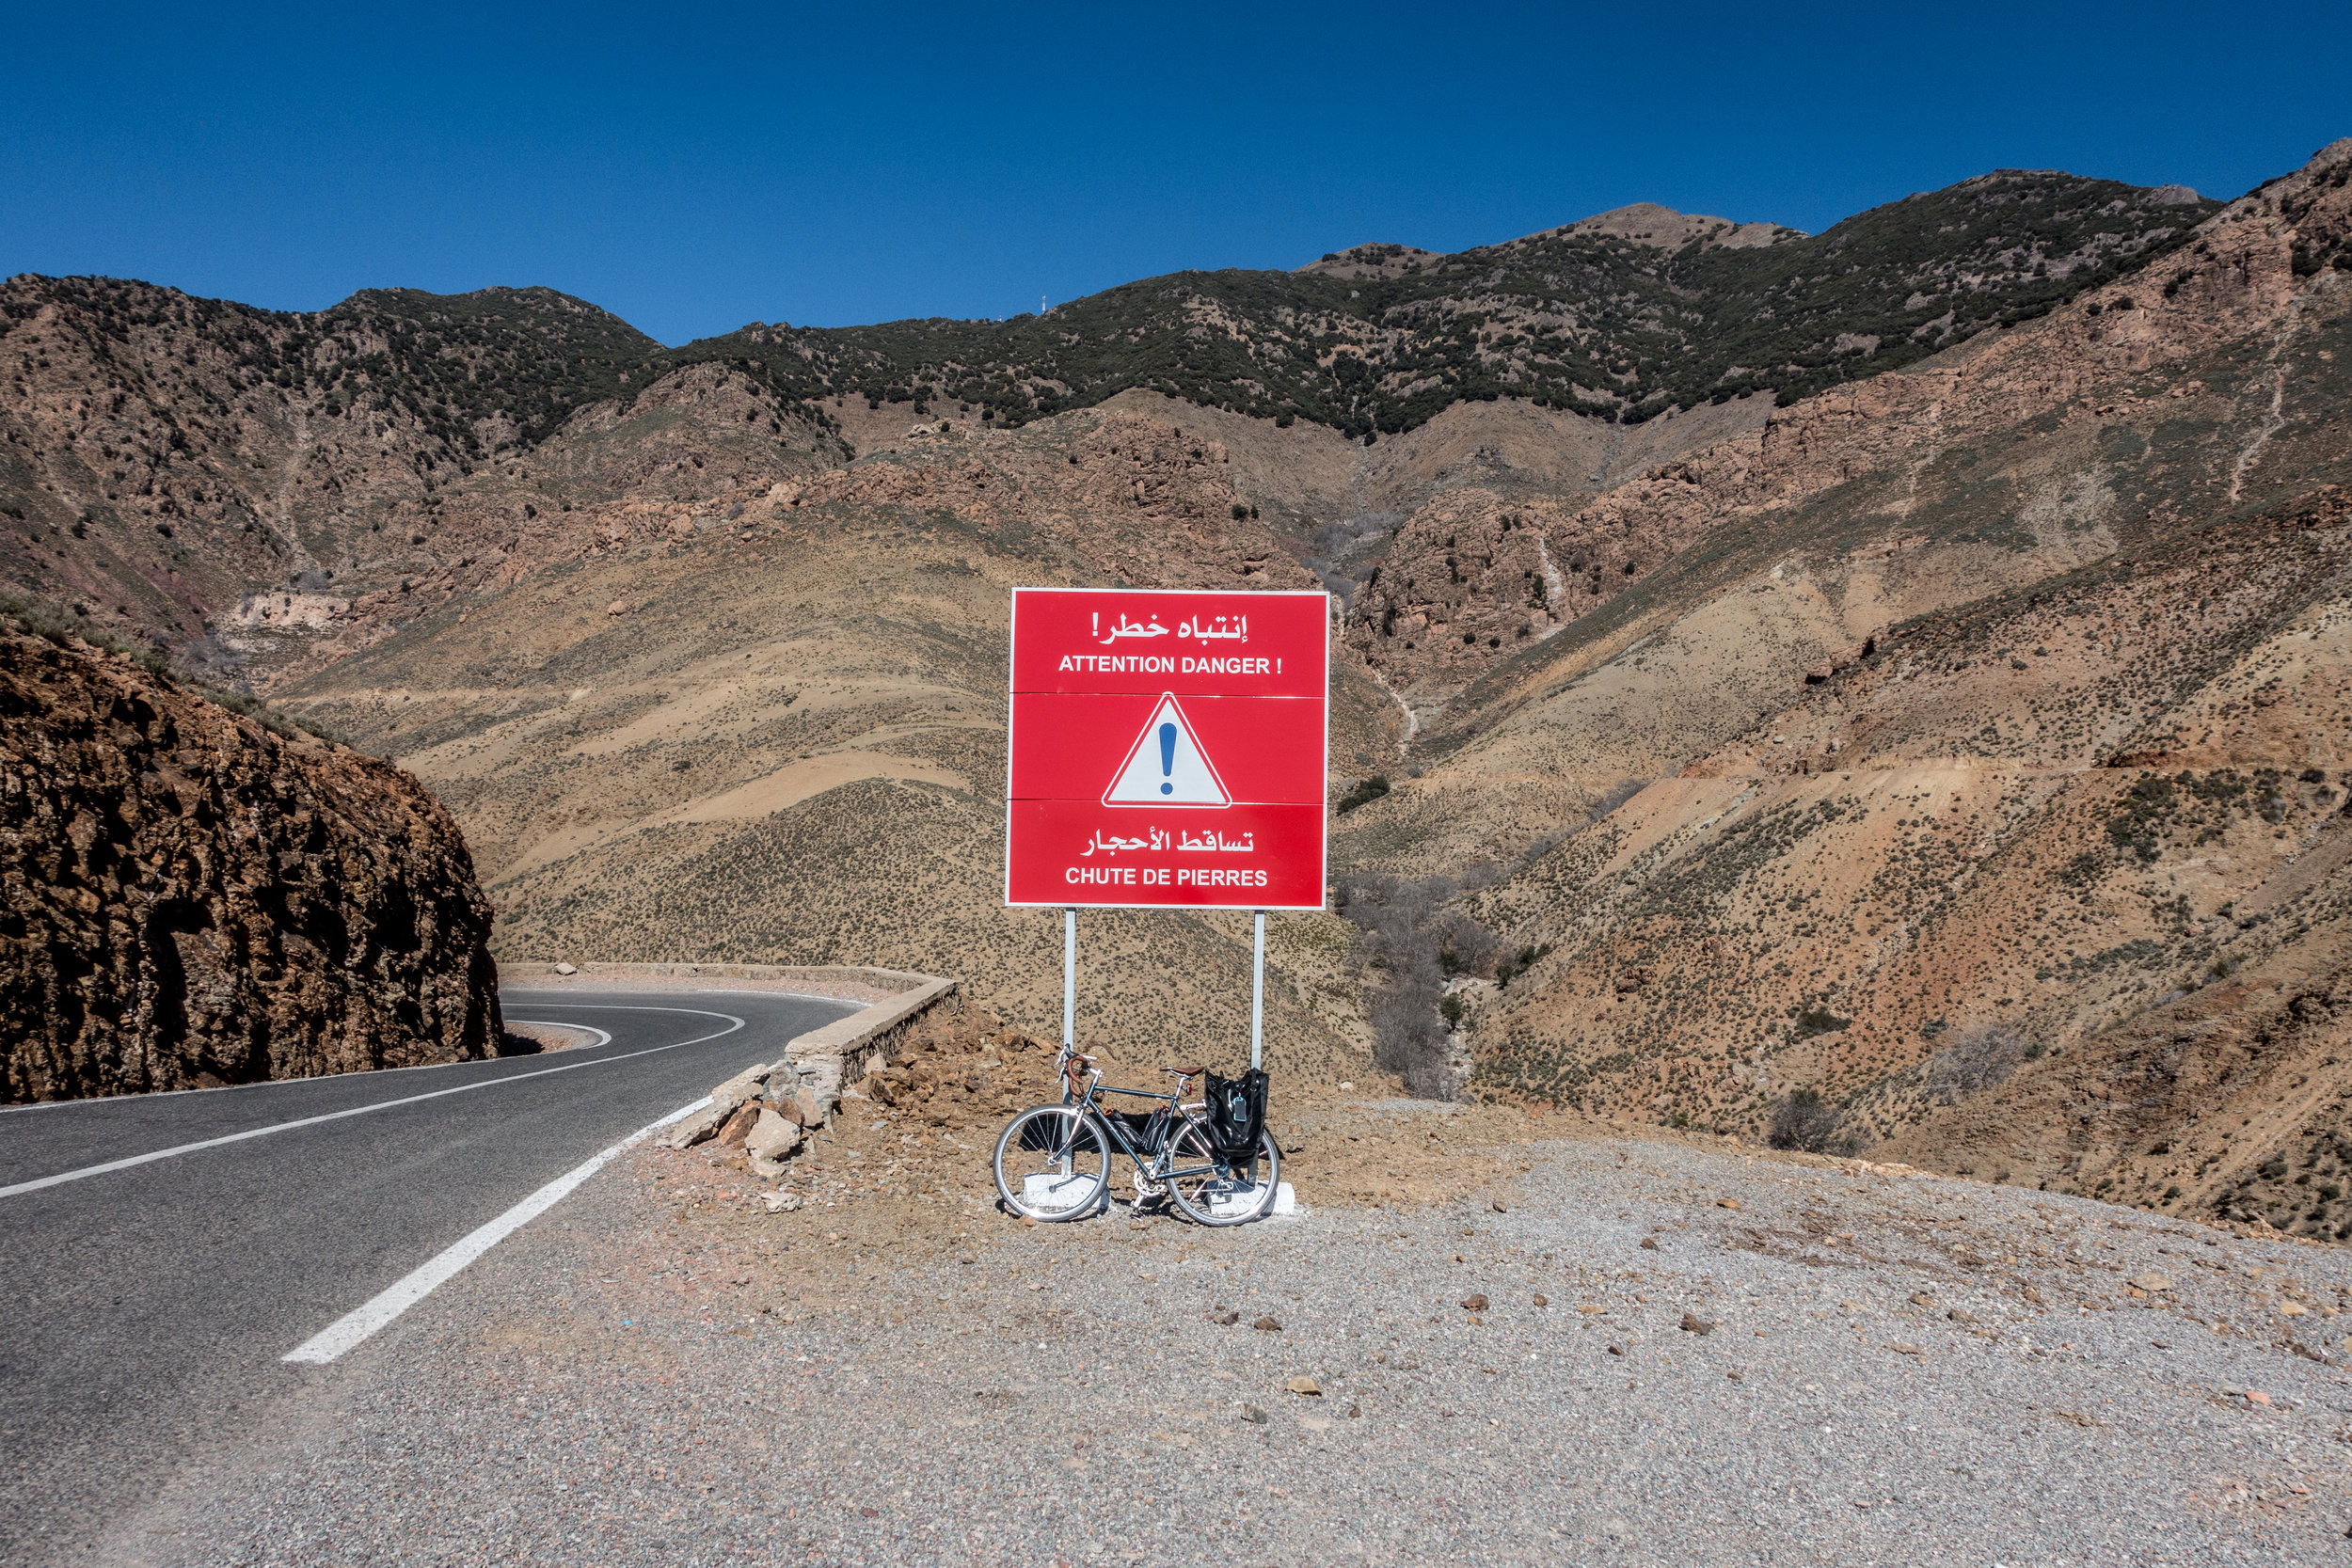 Surviving the hairpin descent of Morocco's Atlas Mountains without incident or injury.